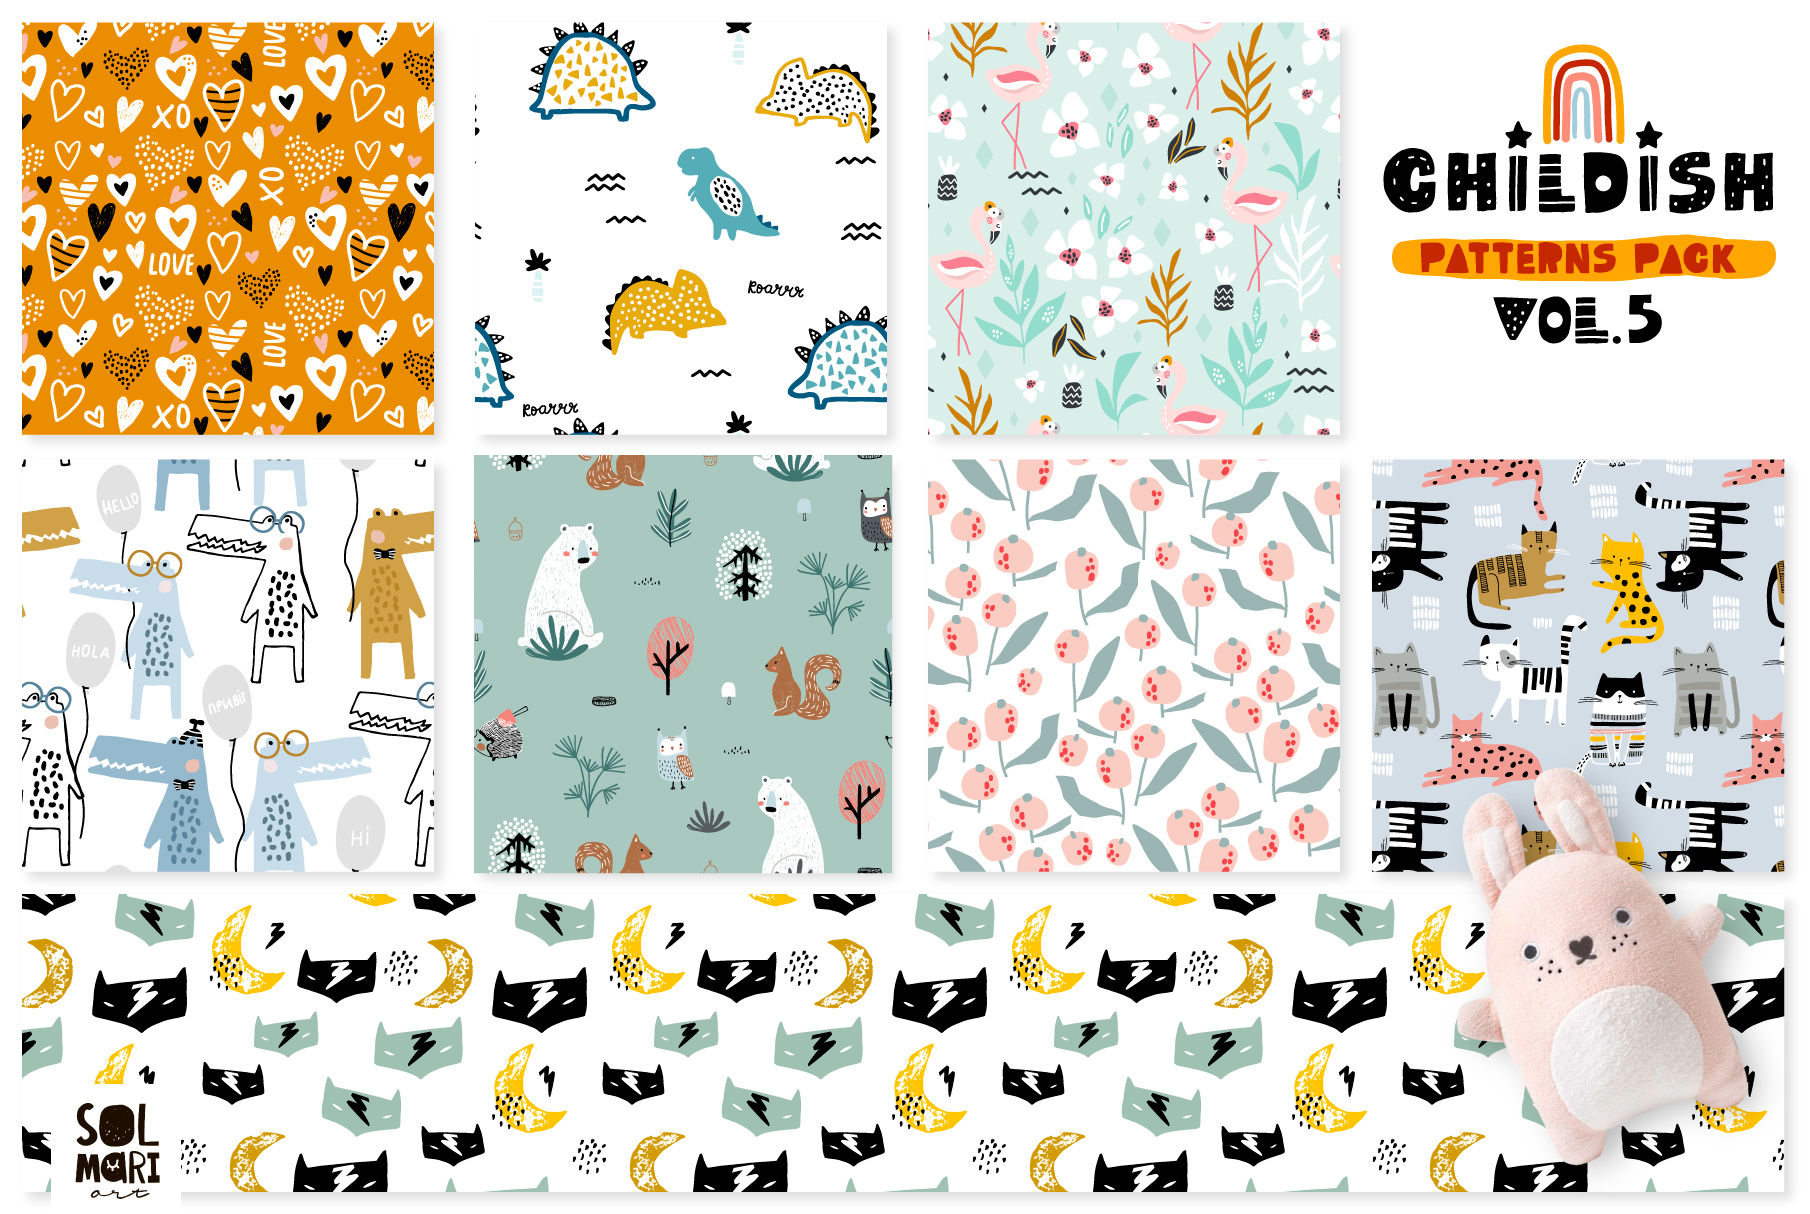 Childish patterns pack vol. 5 example image 3